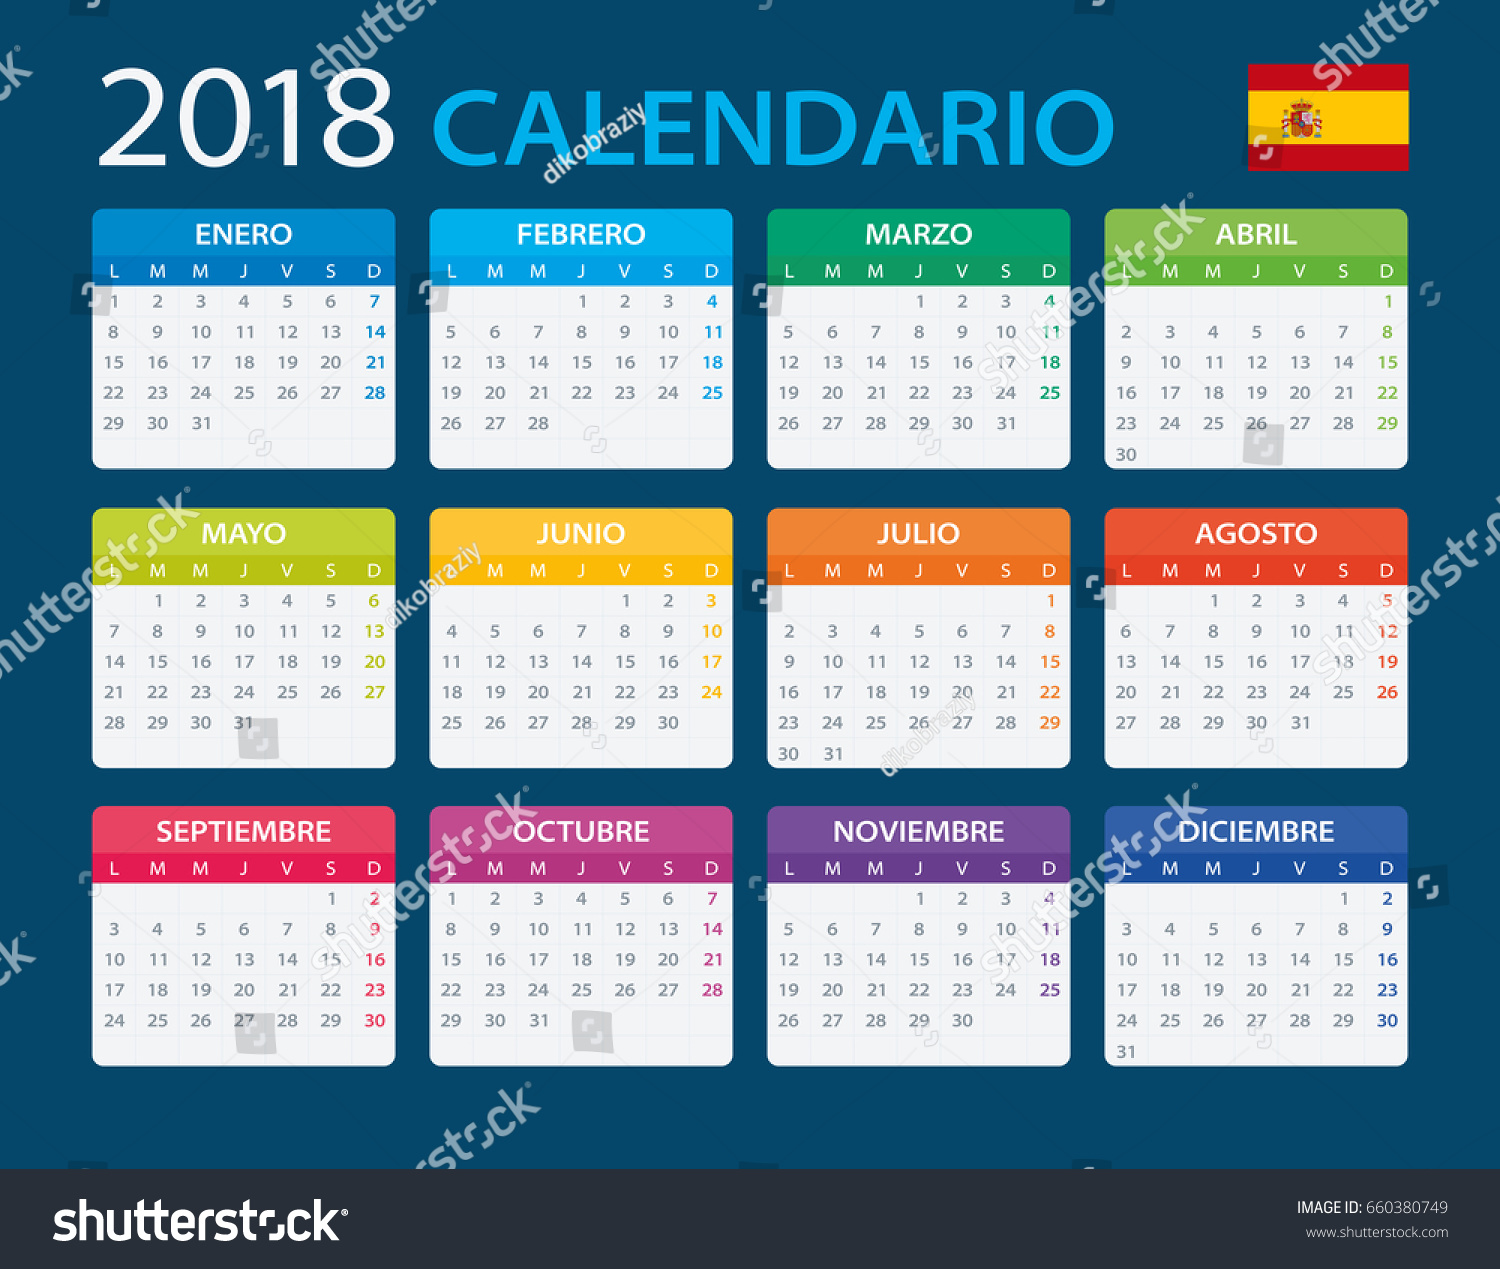 calendar 2018 spanish version vector illustration